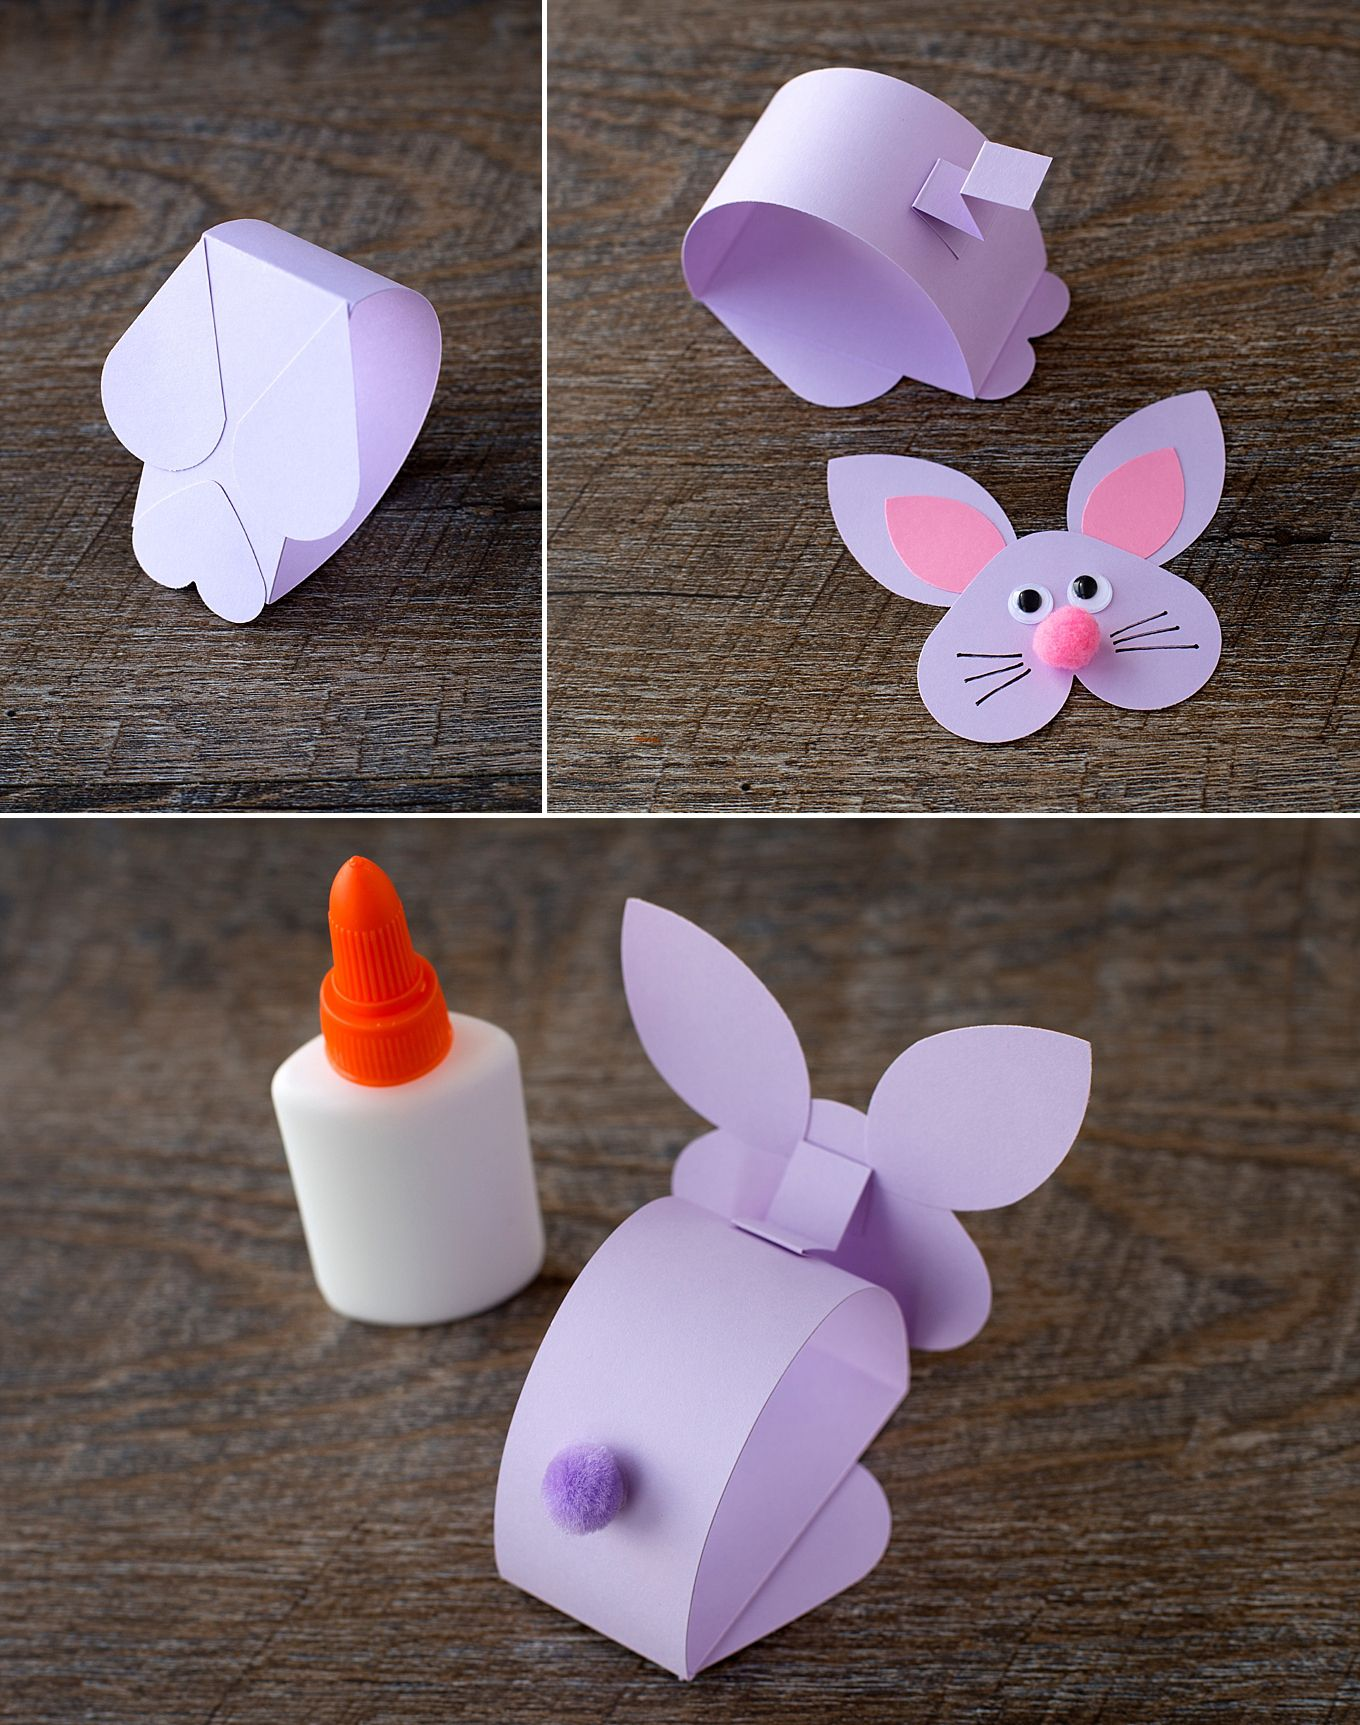 Paper Bobble Head Bunny Craft for Kids #parenting